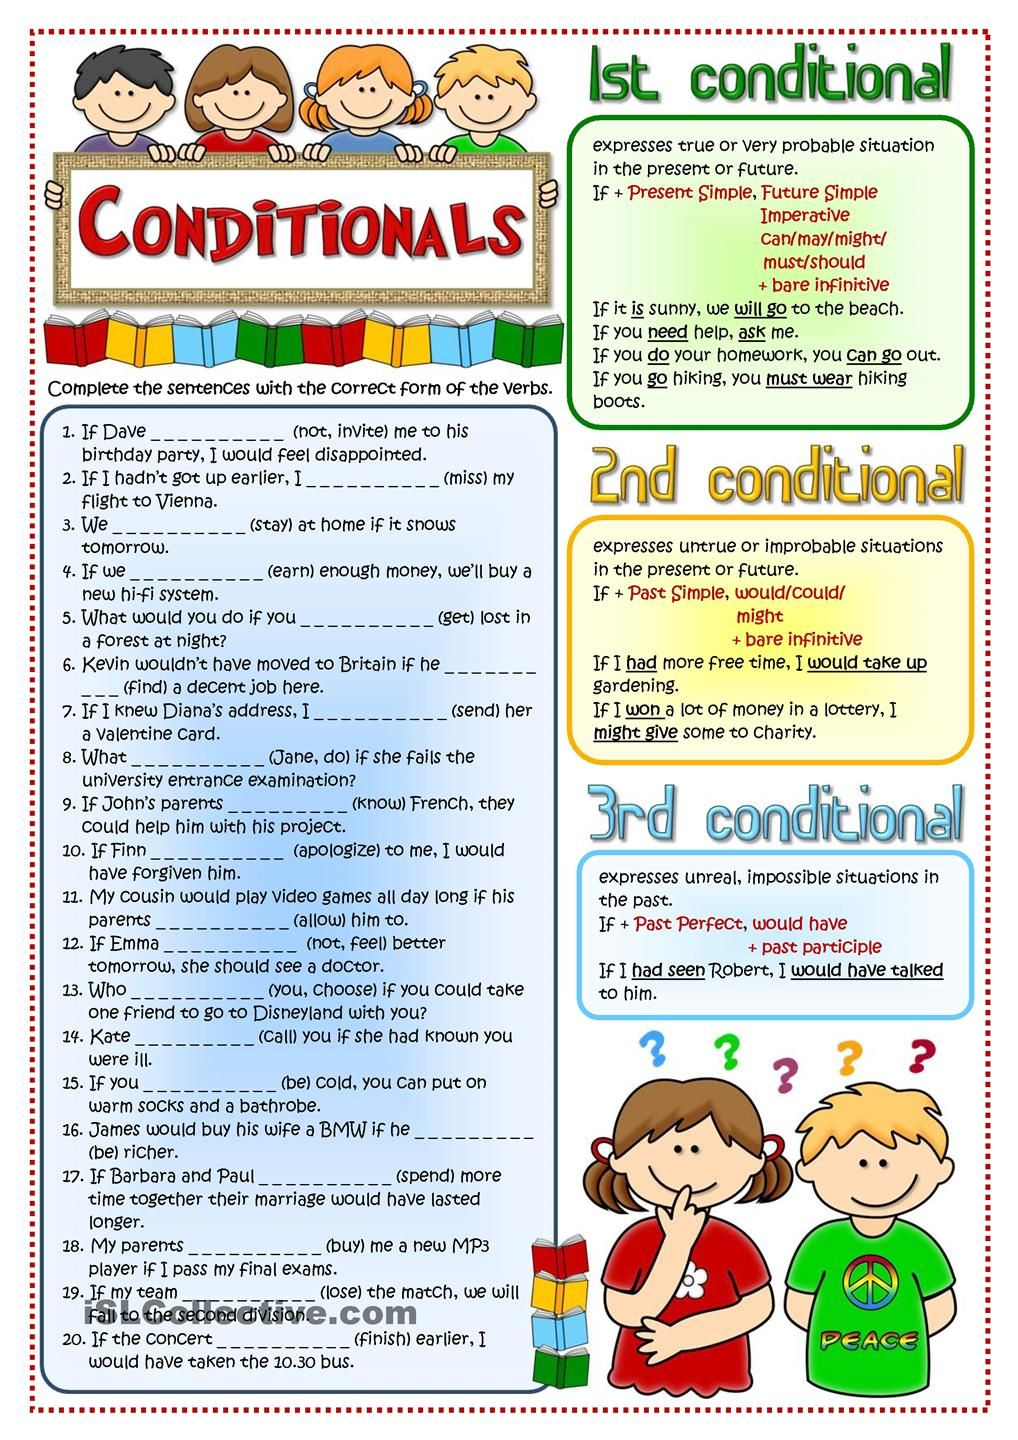 how to use conditional when i talk inglish